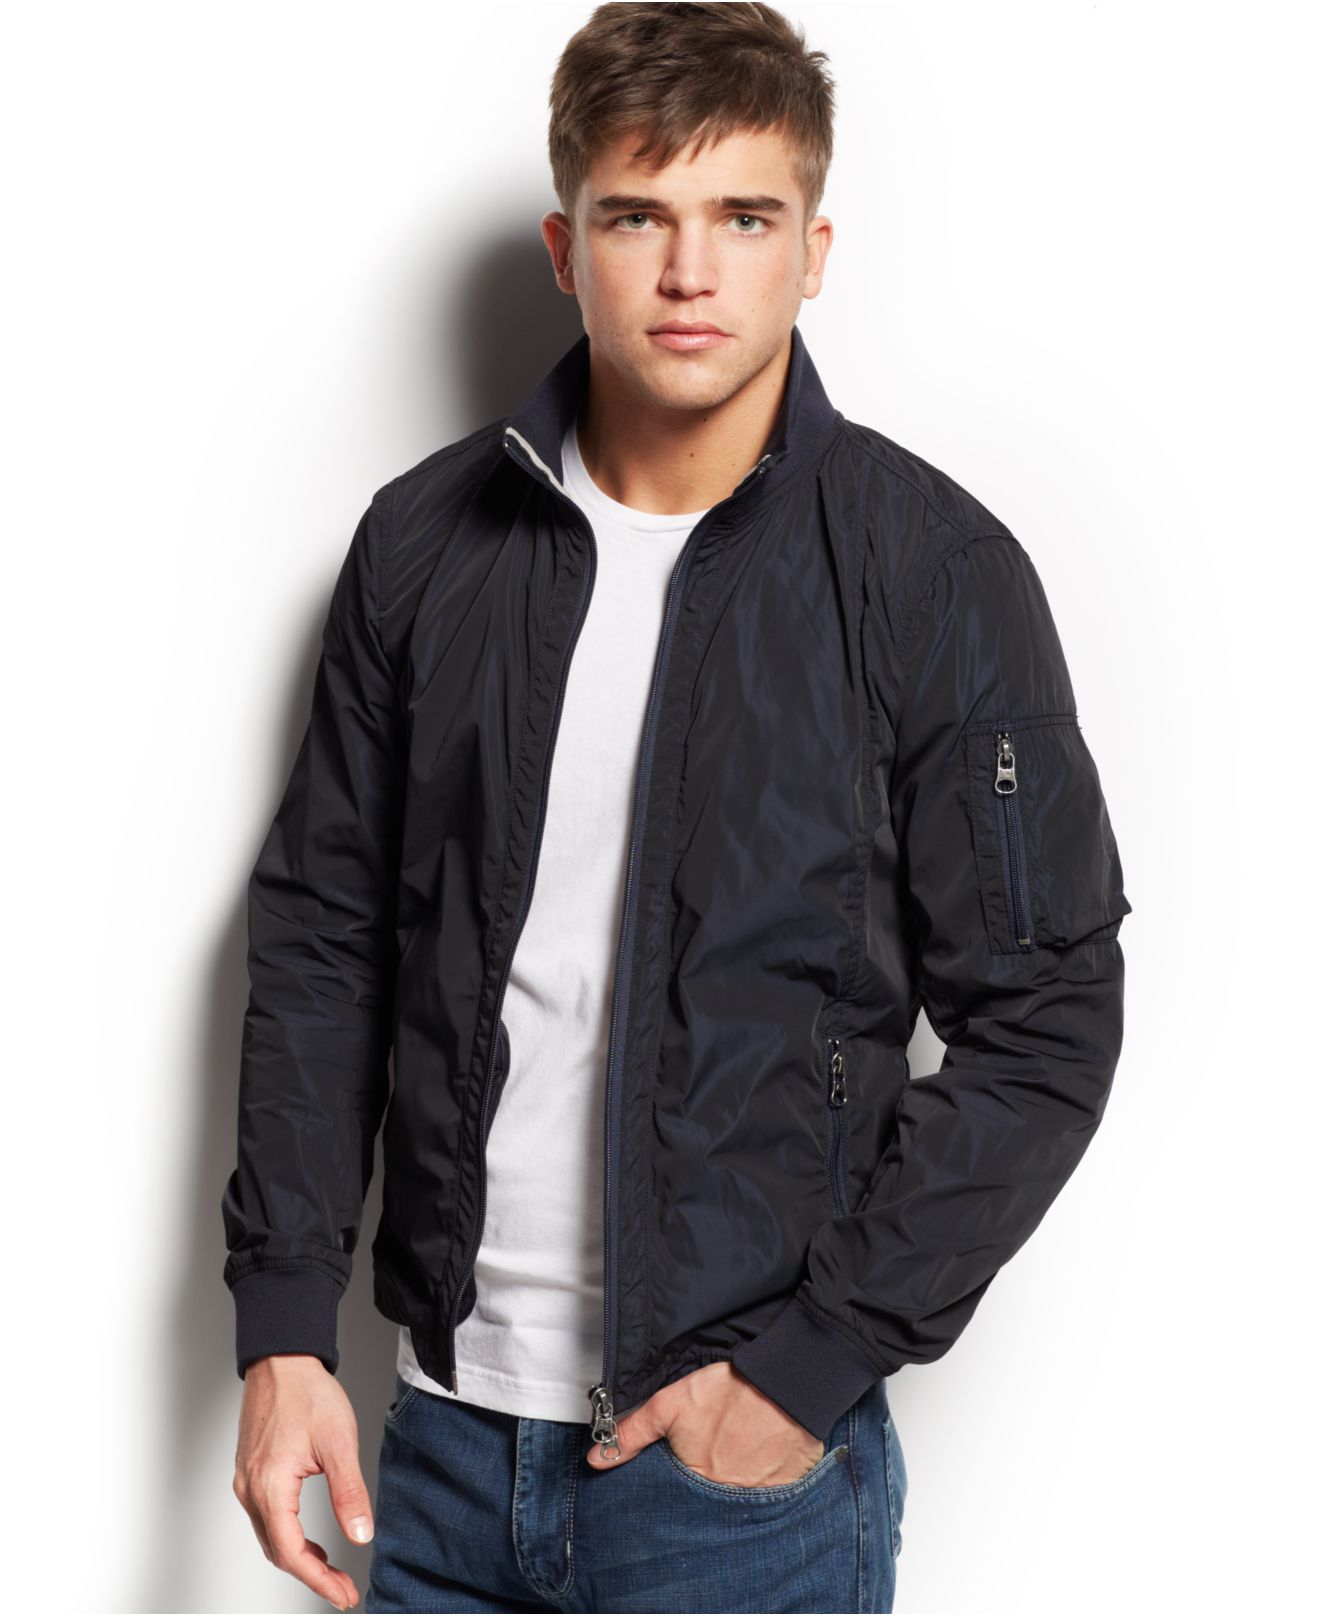 Armani jeans Iridescent Bomber Jacket in Black for Men